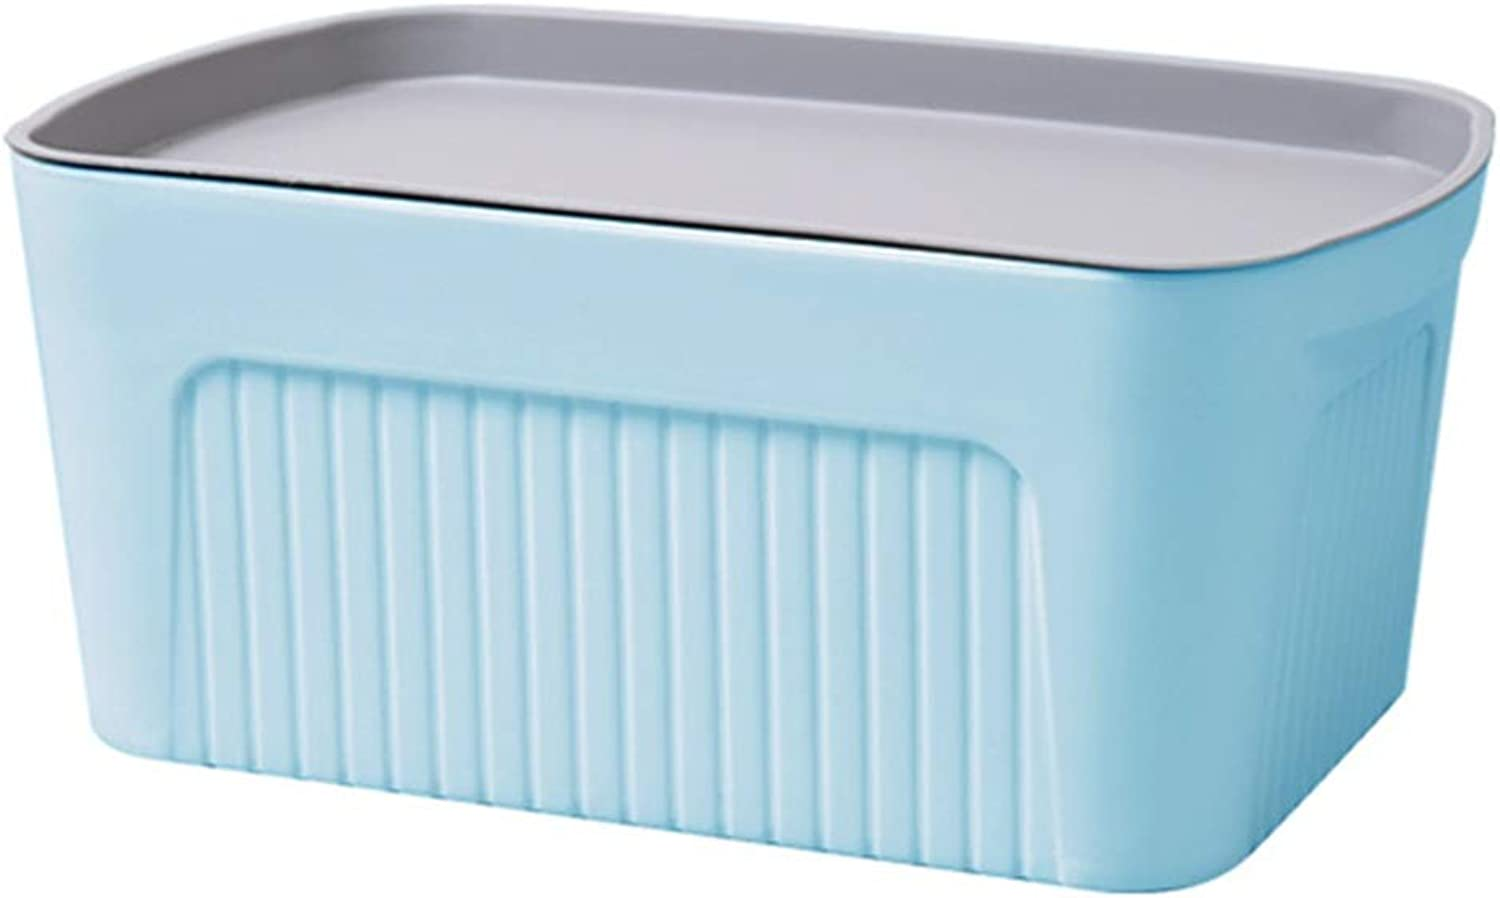 ZHANGQIANG Storage Basket Laundry Basket Large Plastic Storage Box and Lid (Pack of 1) Multiple Colour with Lid (color   bluee, Size   Medium)